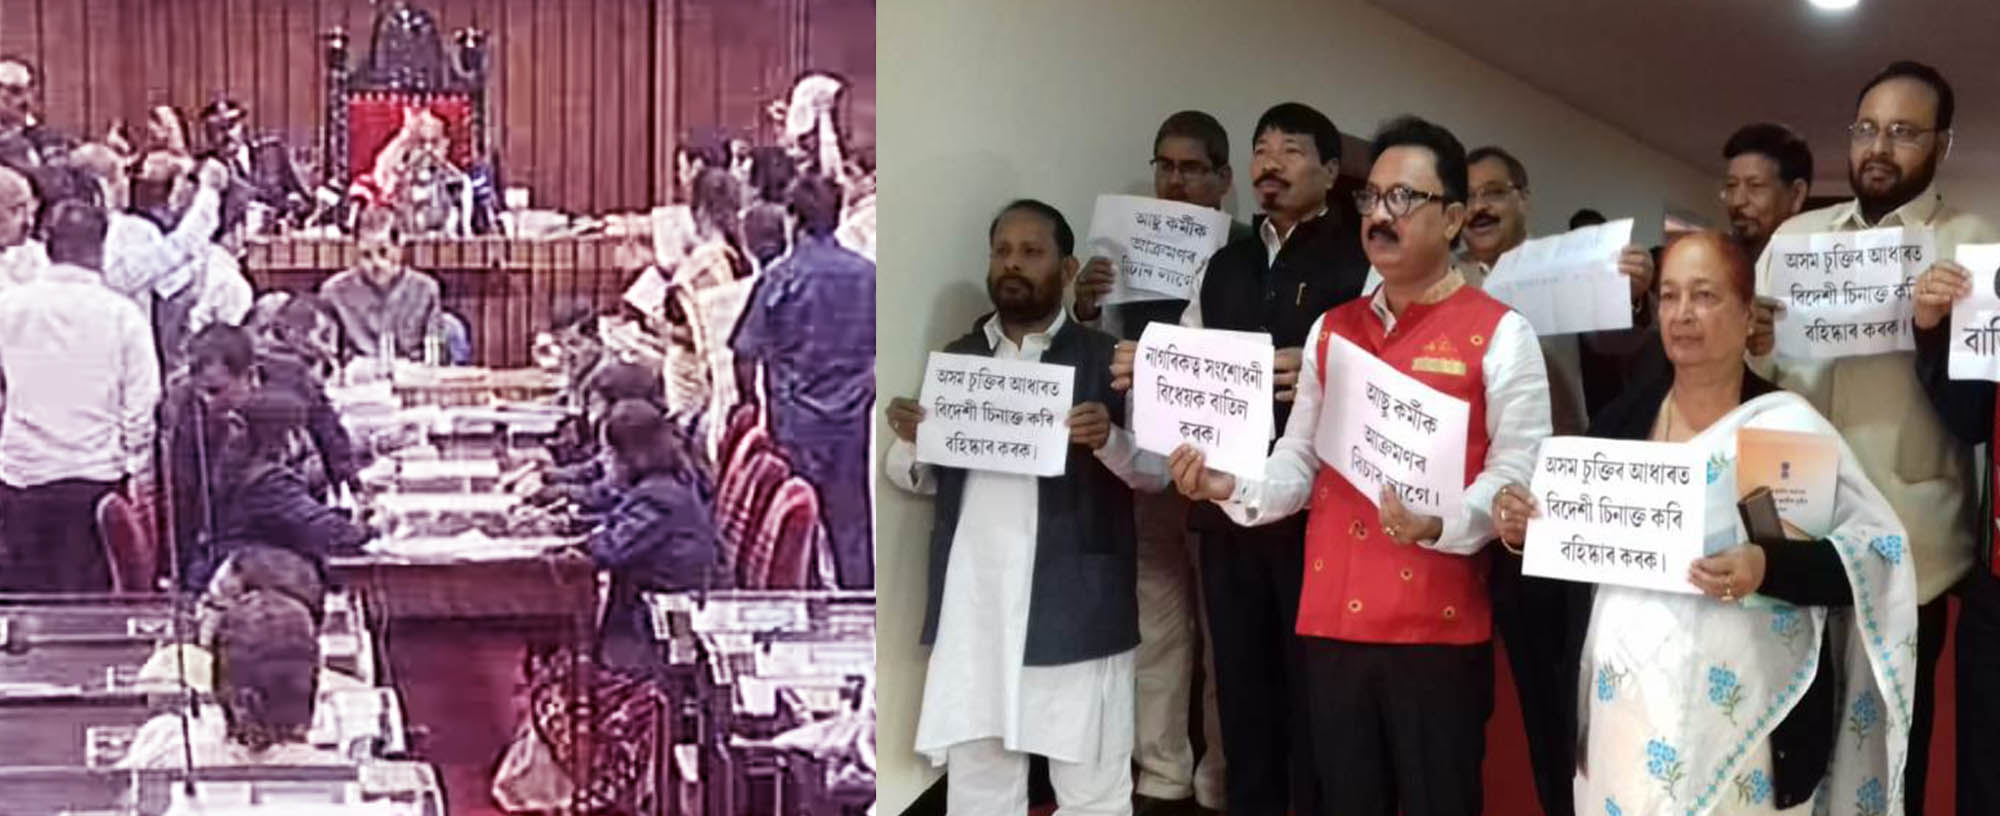 Uproar in First Day of Assam Legislative Assembly Budget Session, House Adjourned for half an hour